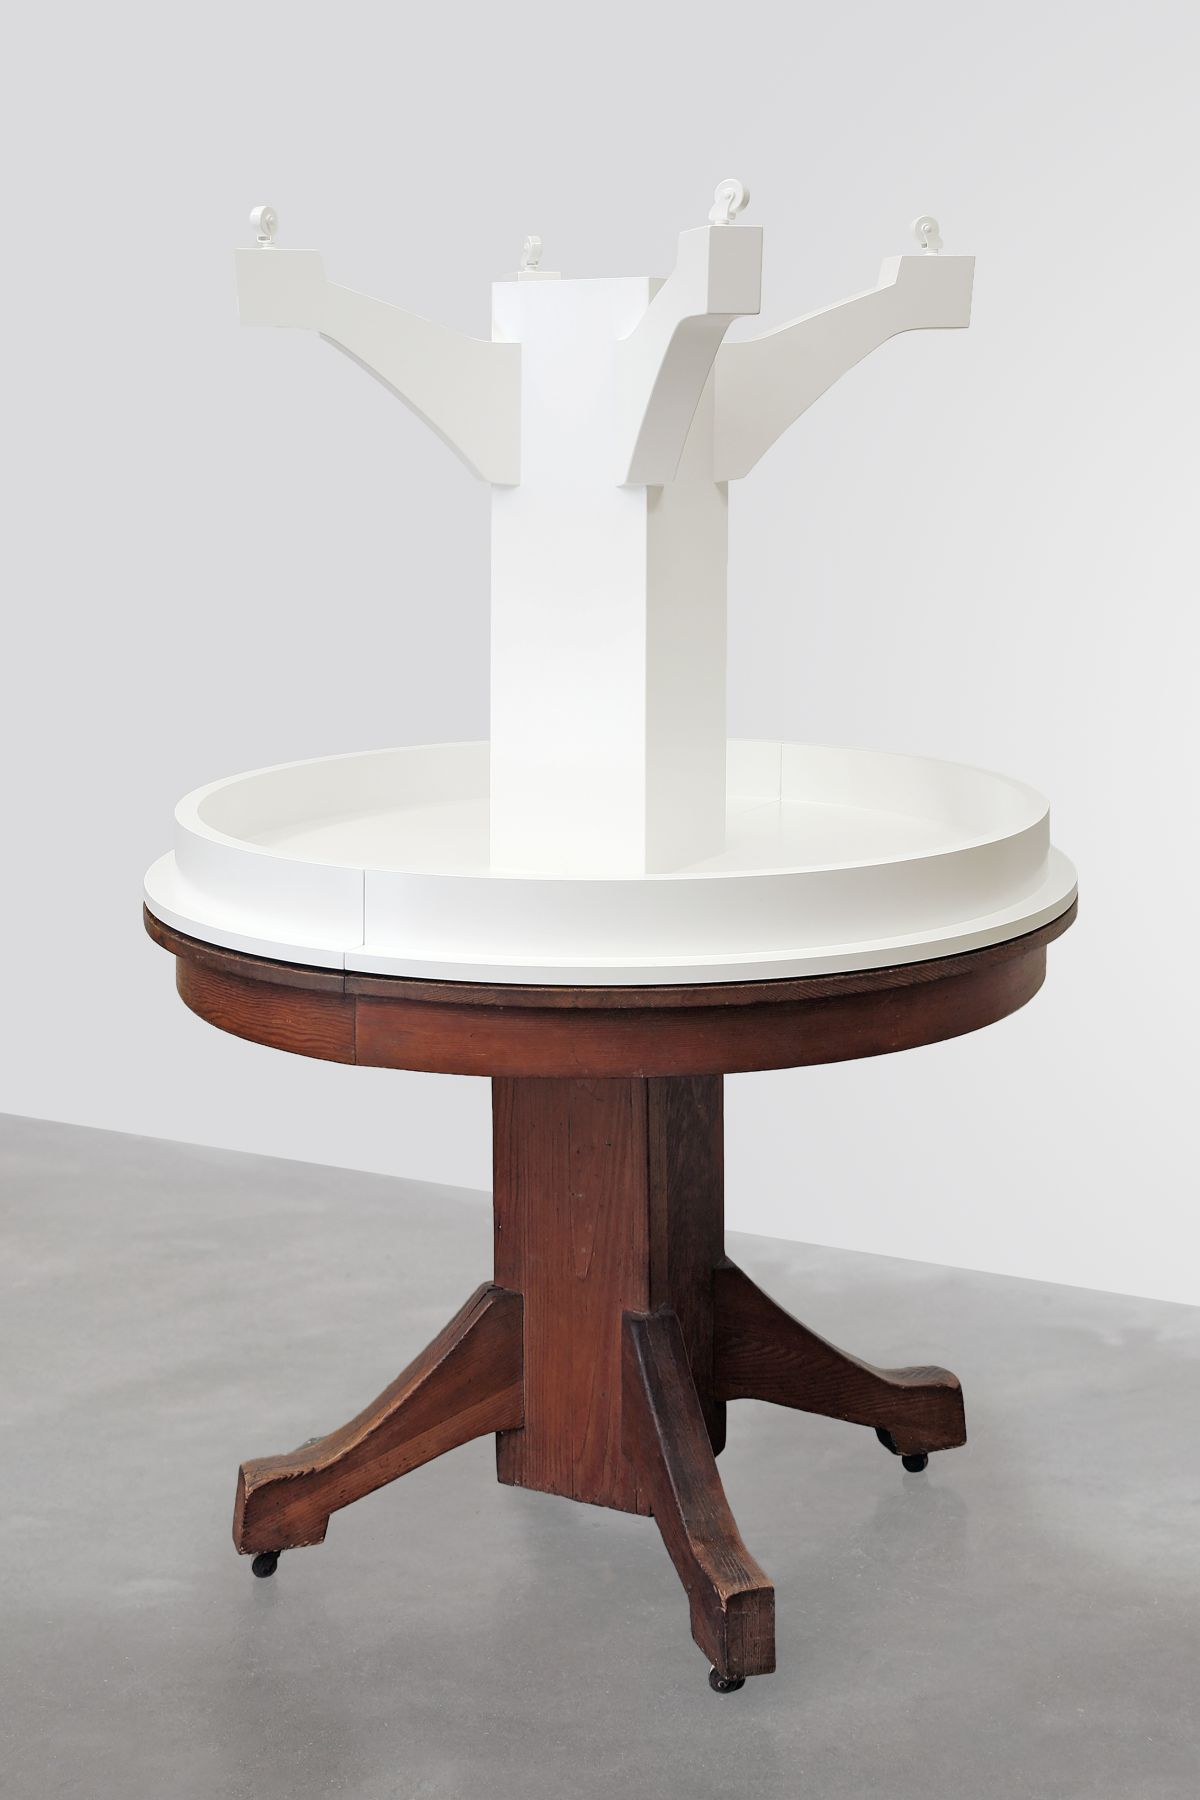 Entry Table, 2016, Enamel on eastern maple, found table